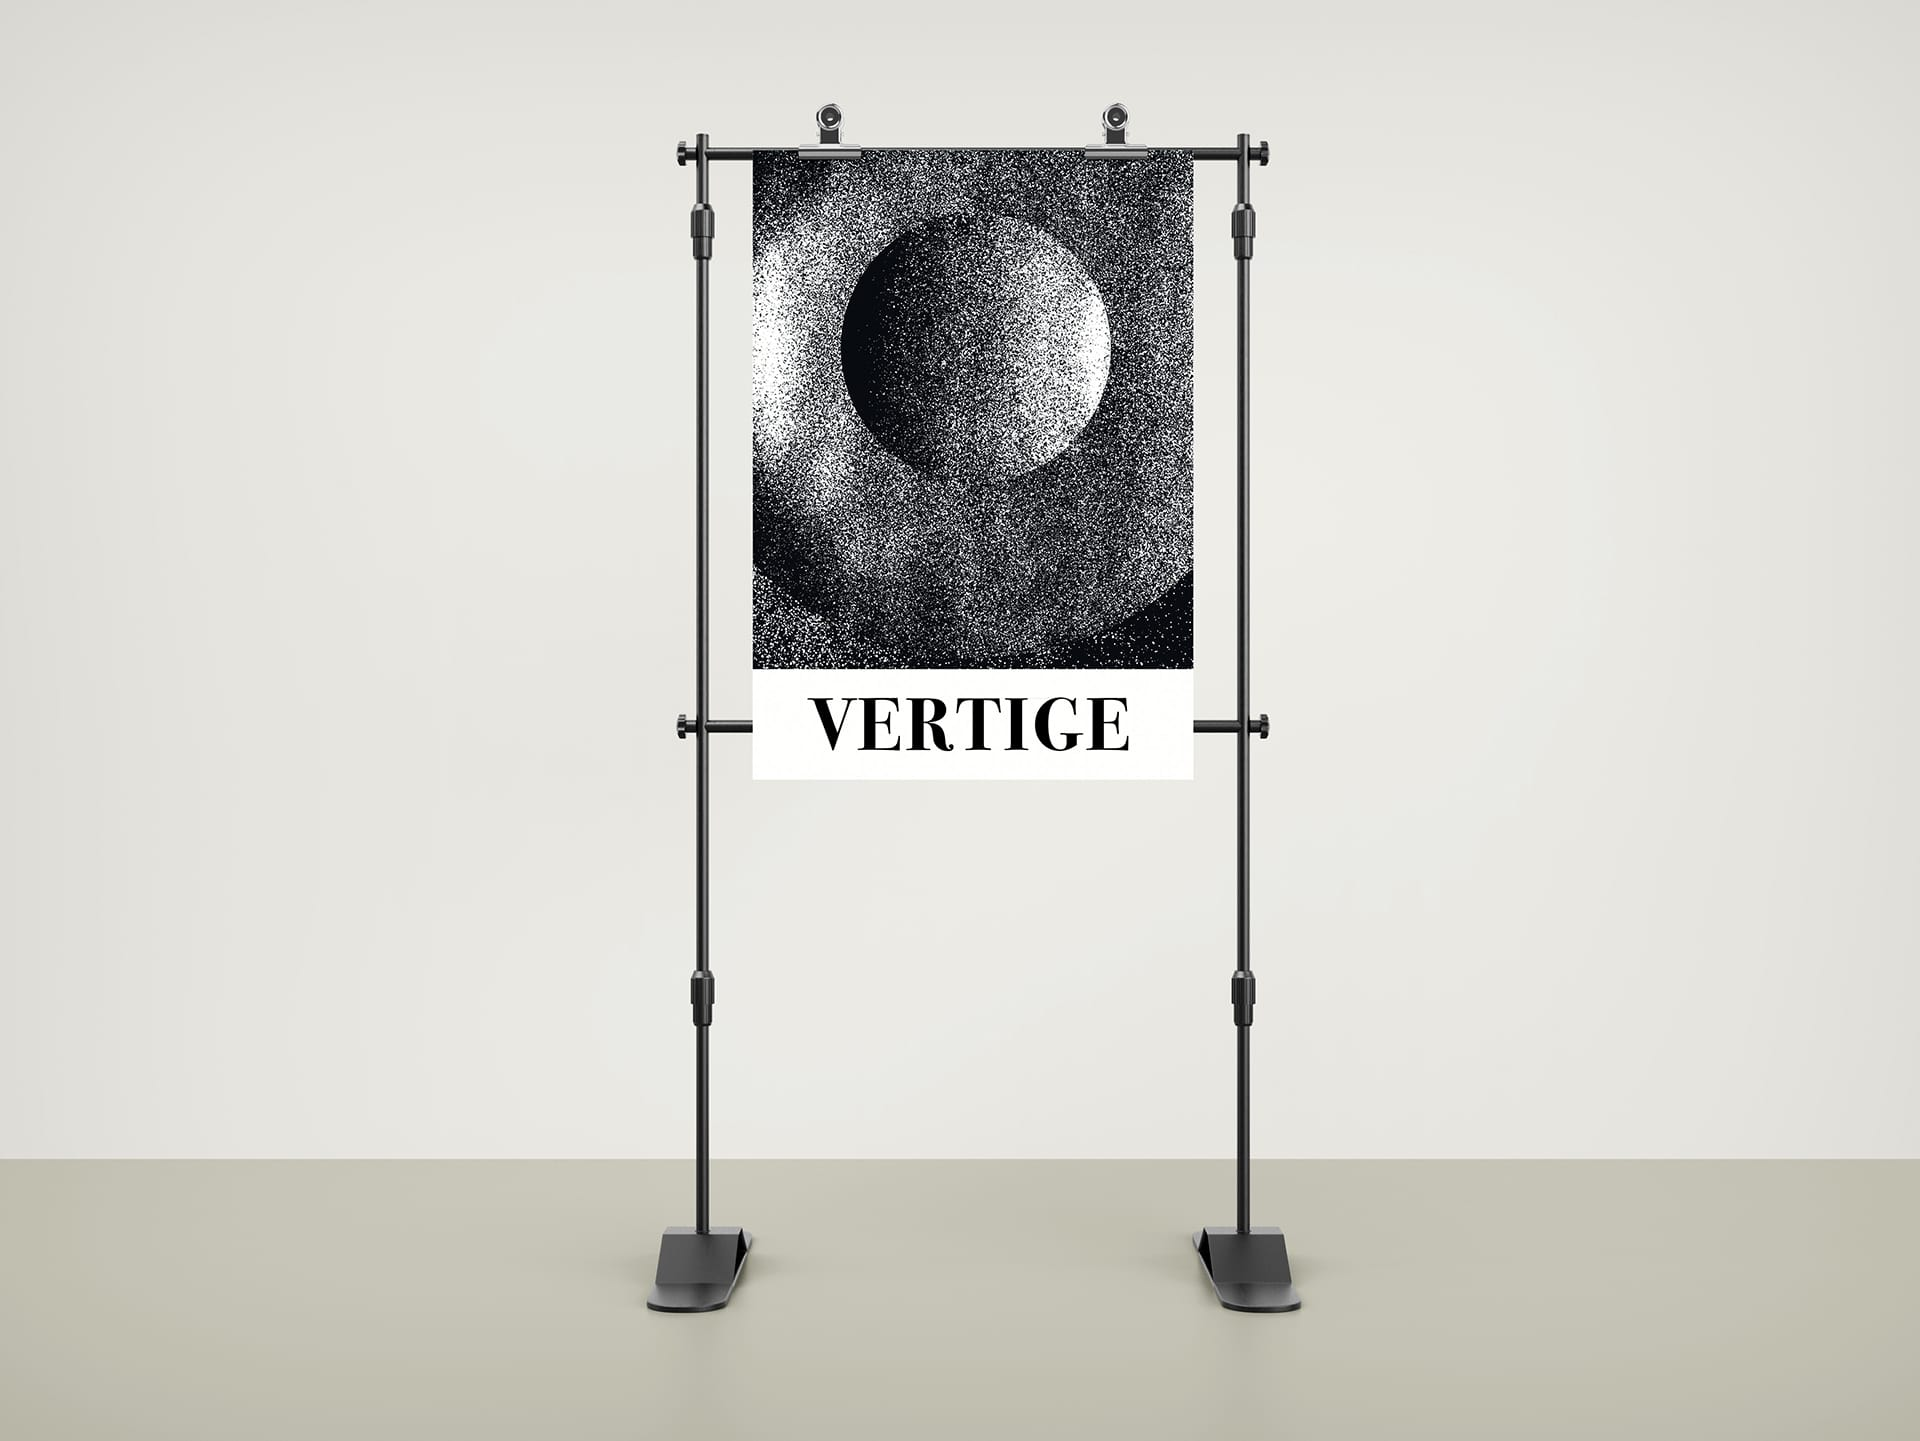 poster-vertige-2-medium